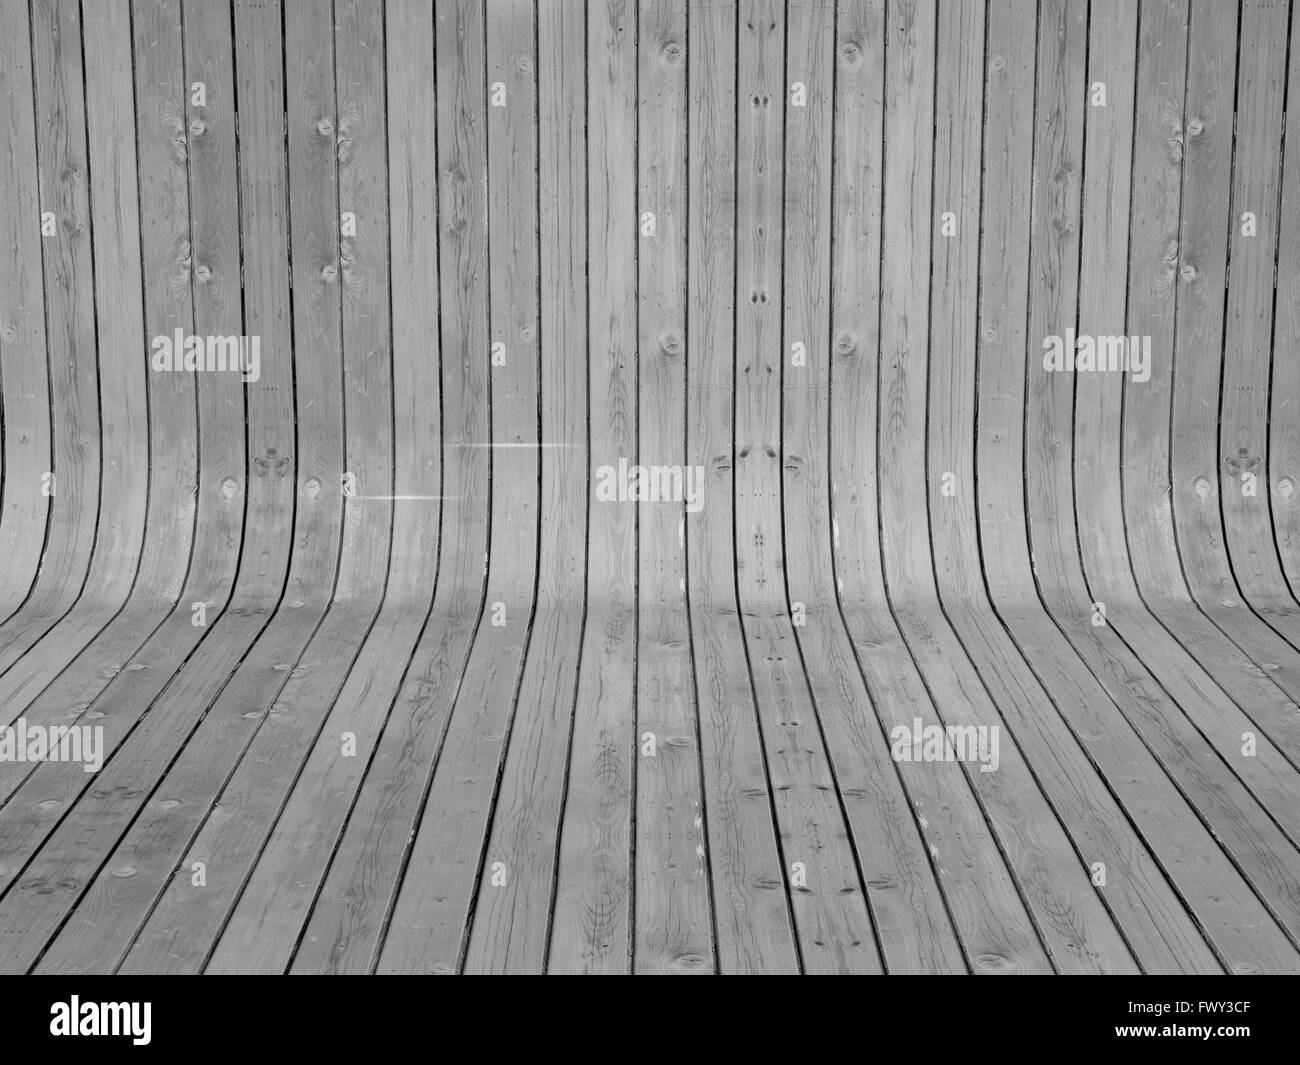 close up of wood planks texture background. - Stock Image